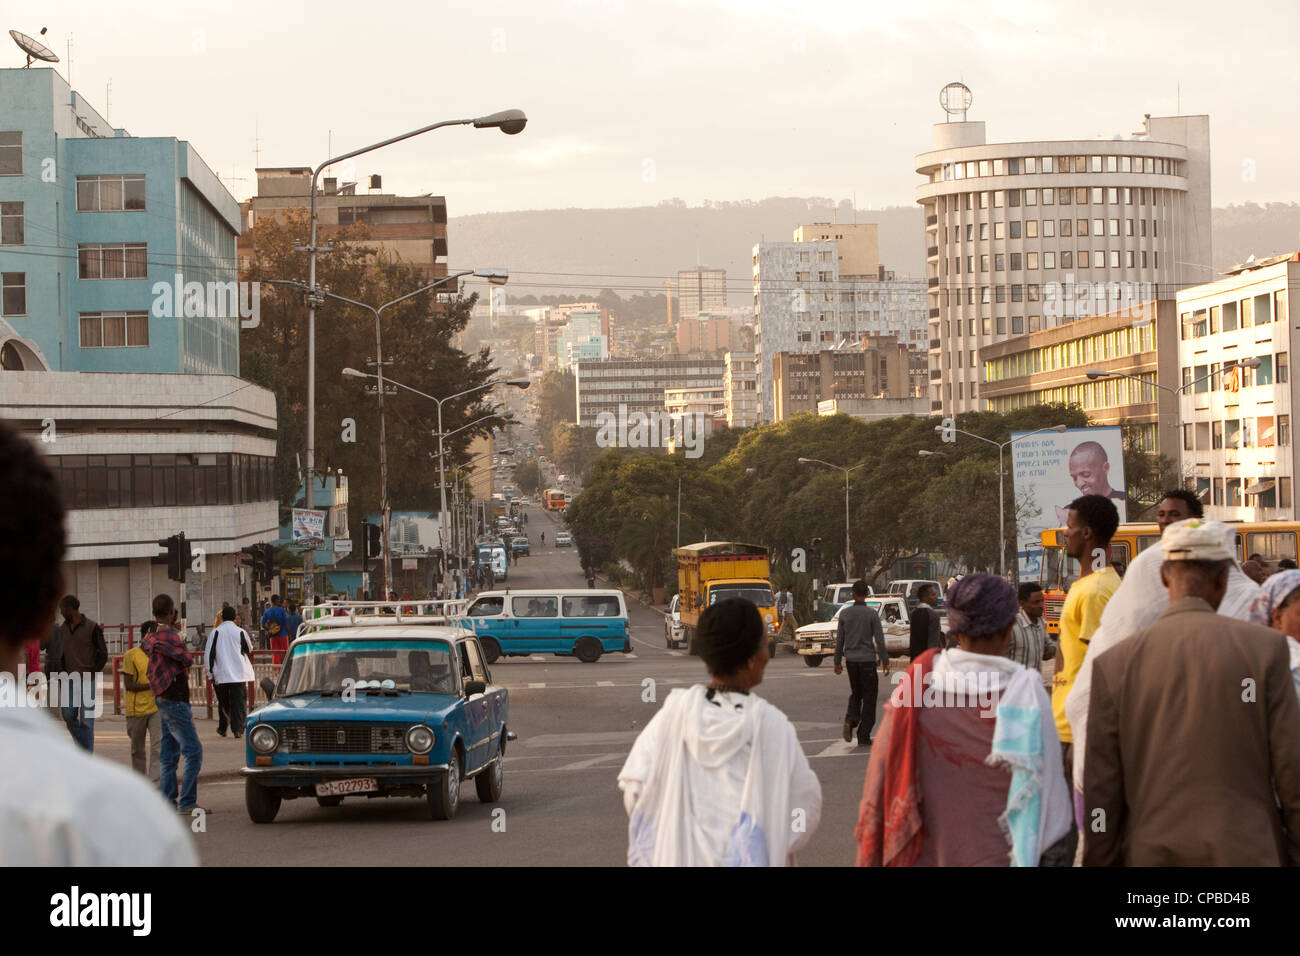 Churchill Ave. - Downtown Addis Ababa, Ethiopia. - Stock Image